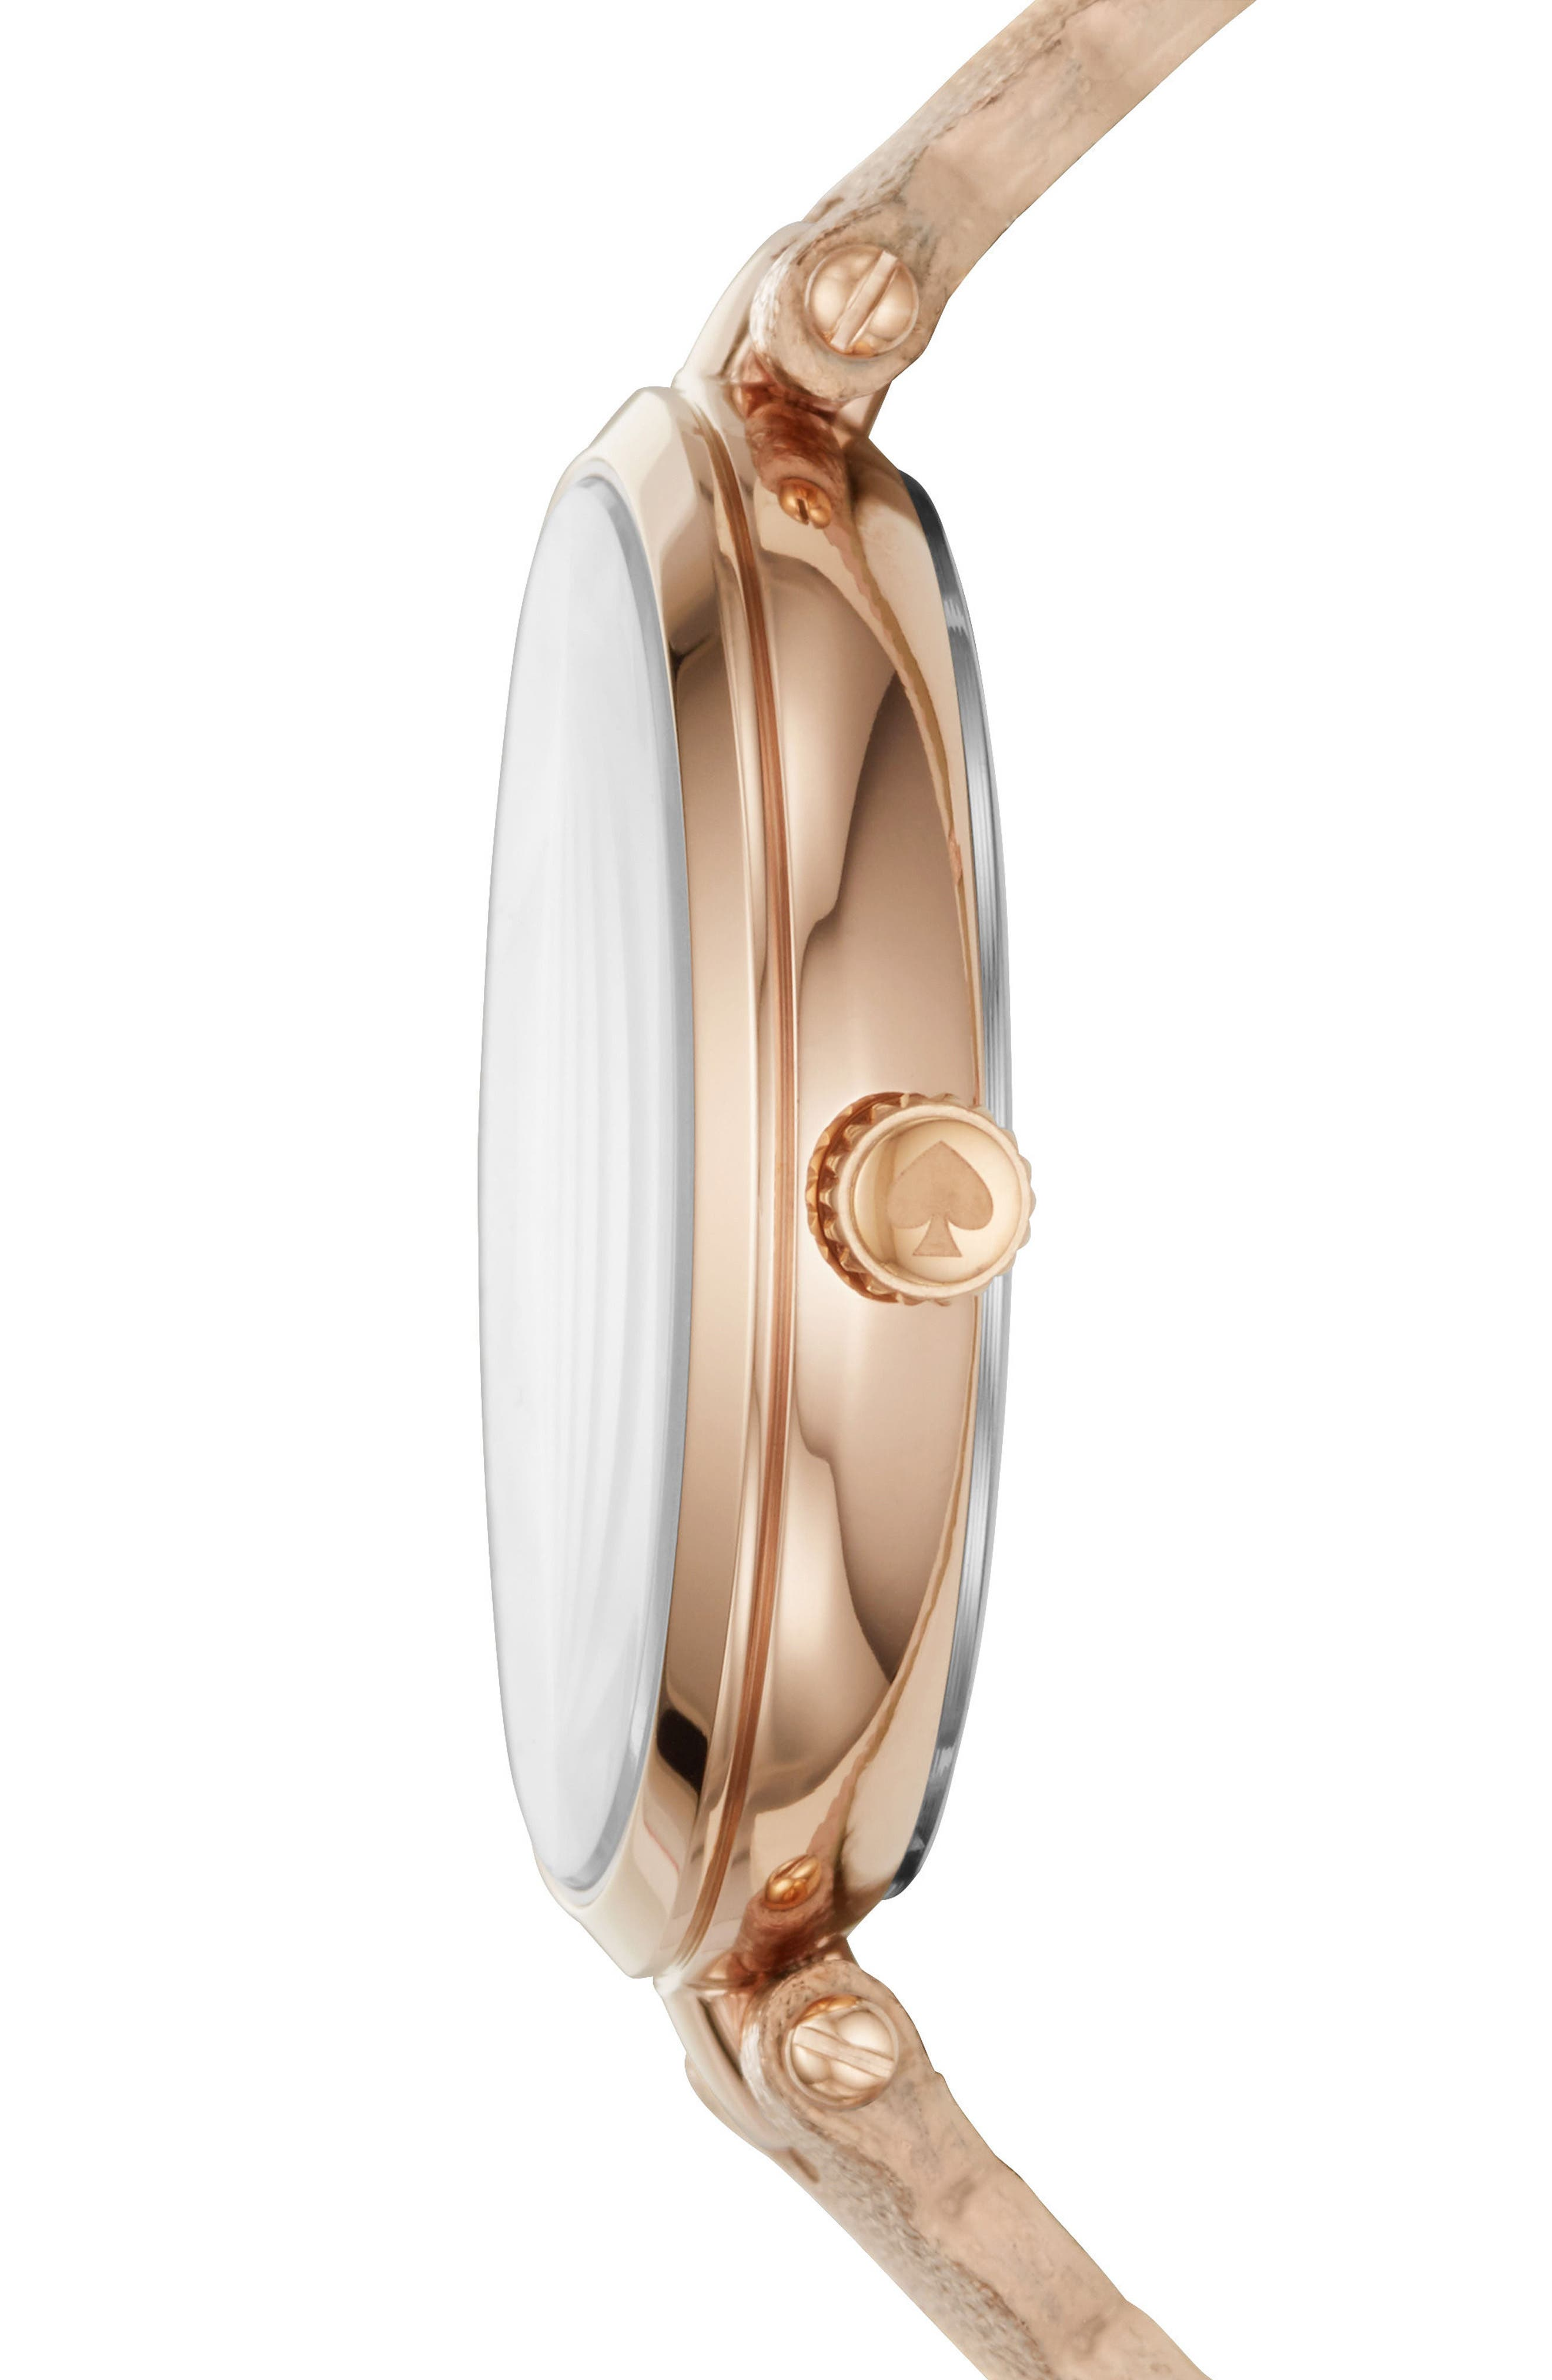 crystal accent scallop holland leather strap watch, 34mm,                             Alternate thumbnail 2, color,                             Rose Gold/ White/ Rose Gold